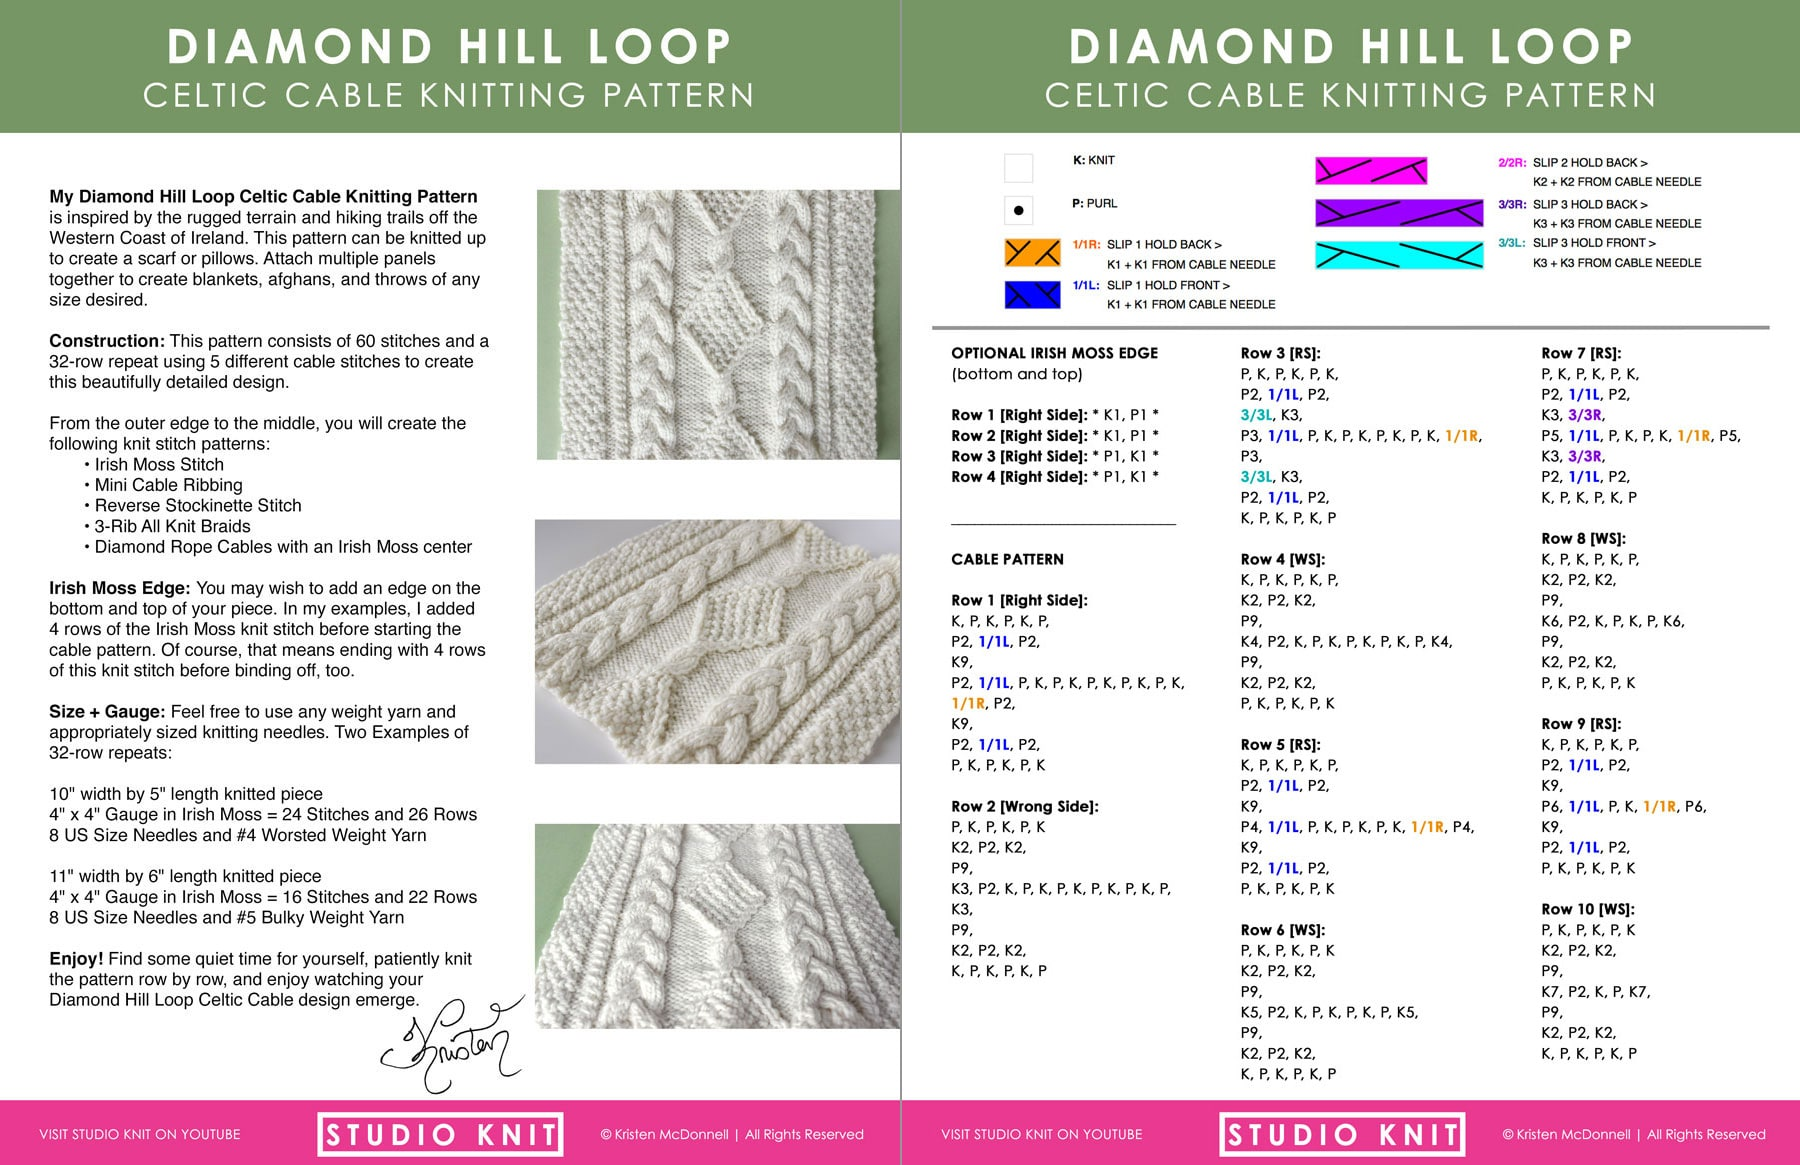 Purchase Diamond Hill Loop Celtic Cable Knitting Pattern by Studio Knit